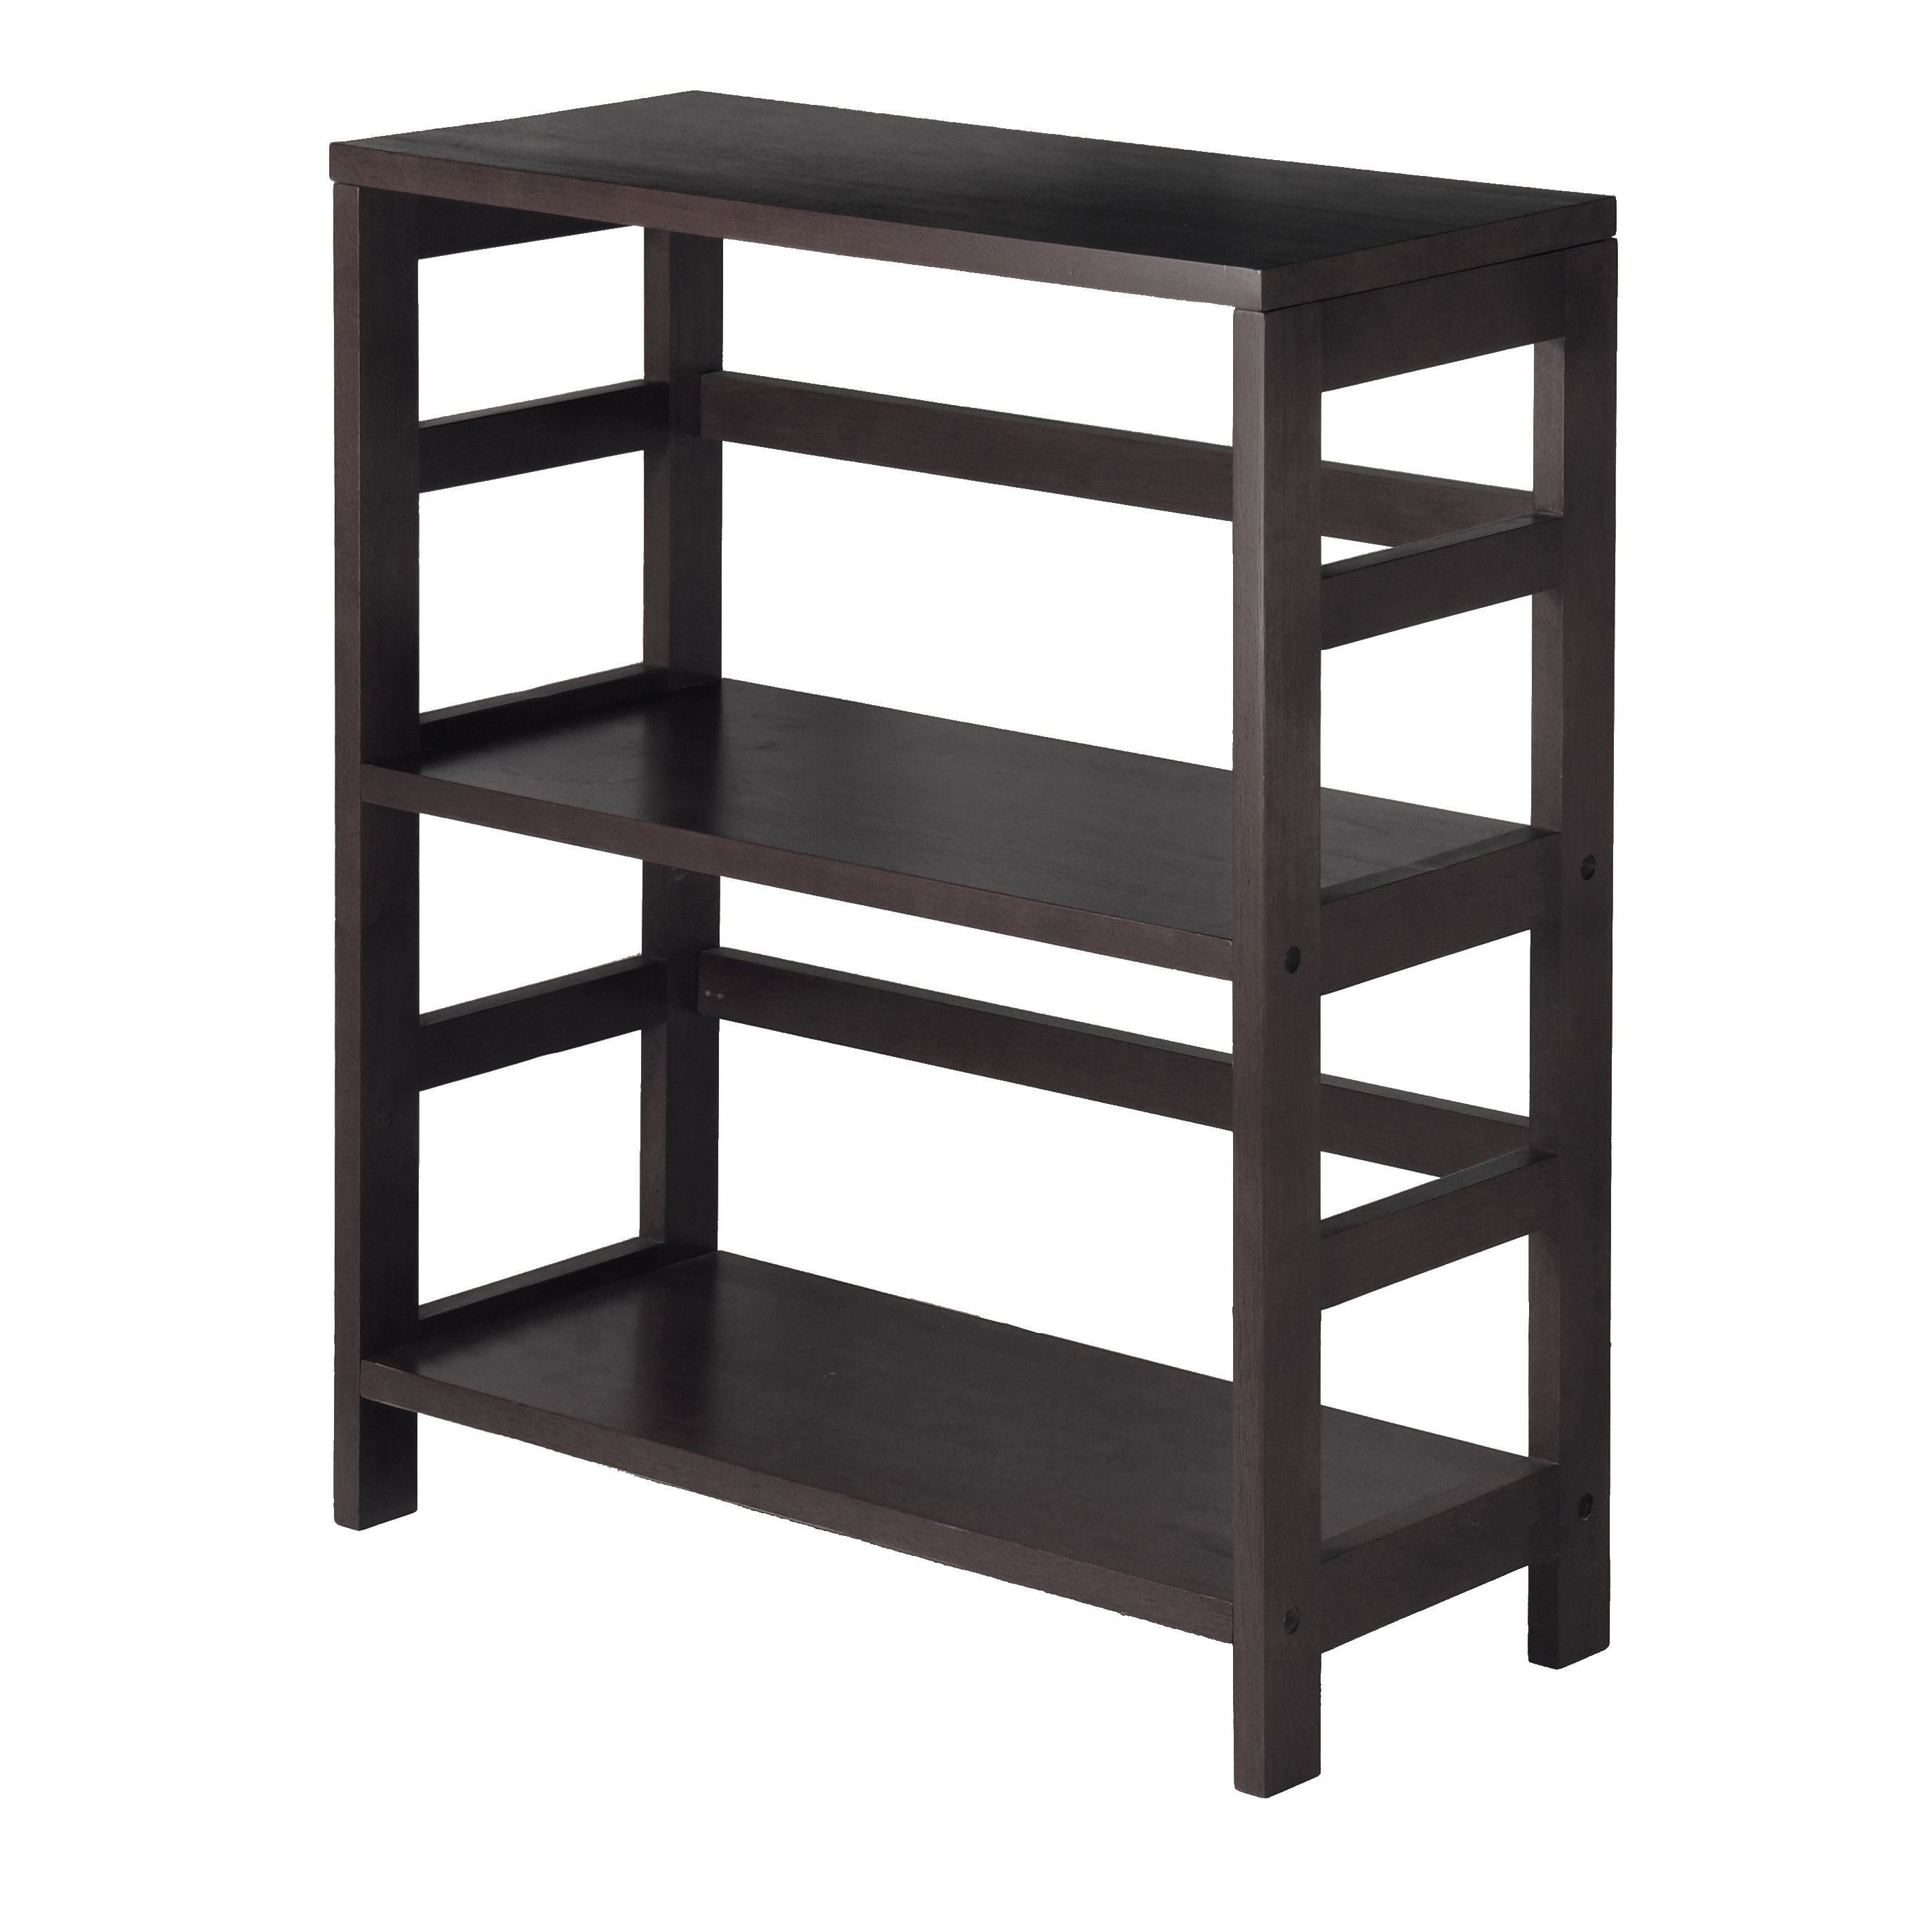 Tinoco Storage Shelf Standard Bookcases Intended For Well Known Scenic Standard Bookcase (View 11 of 20)